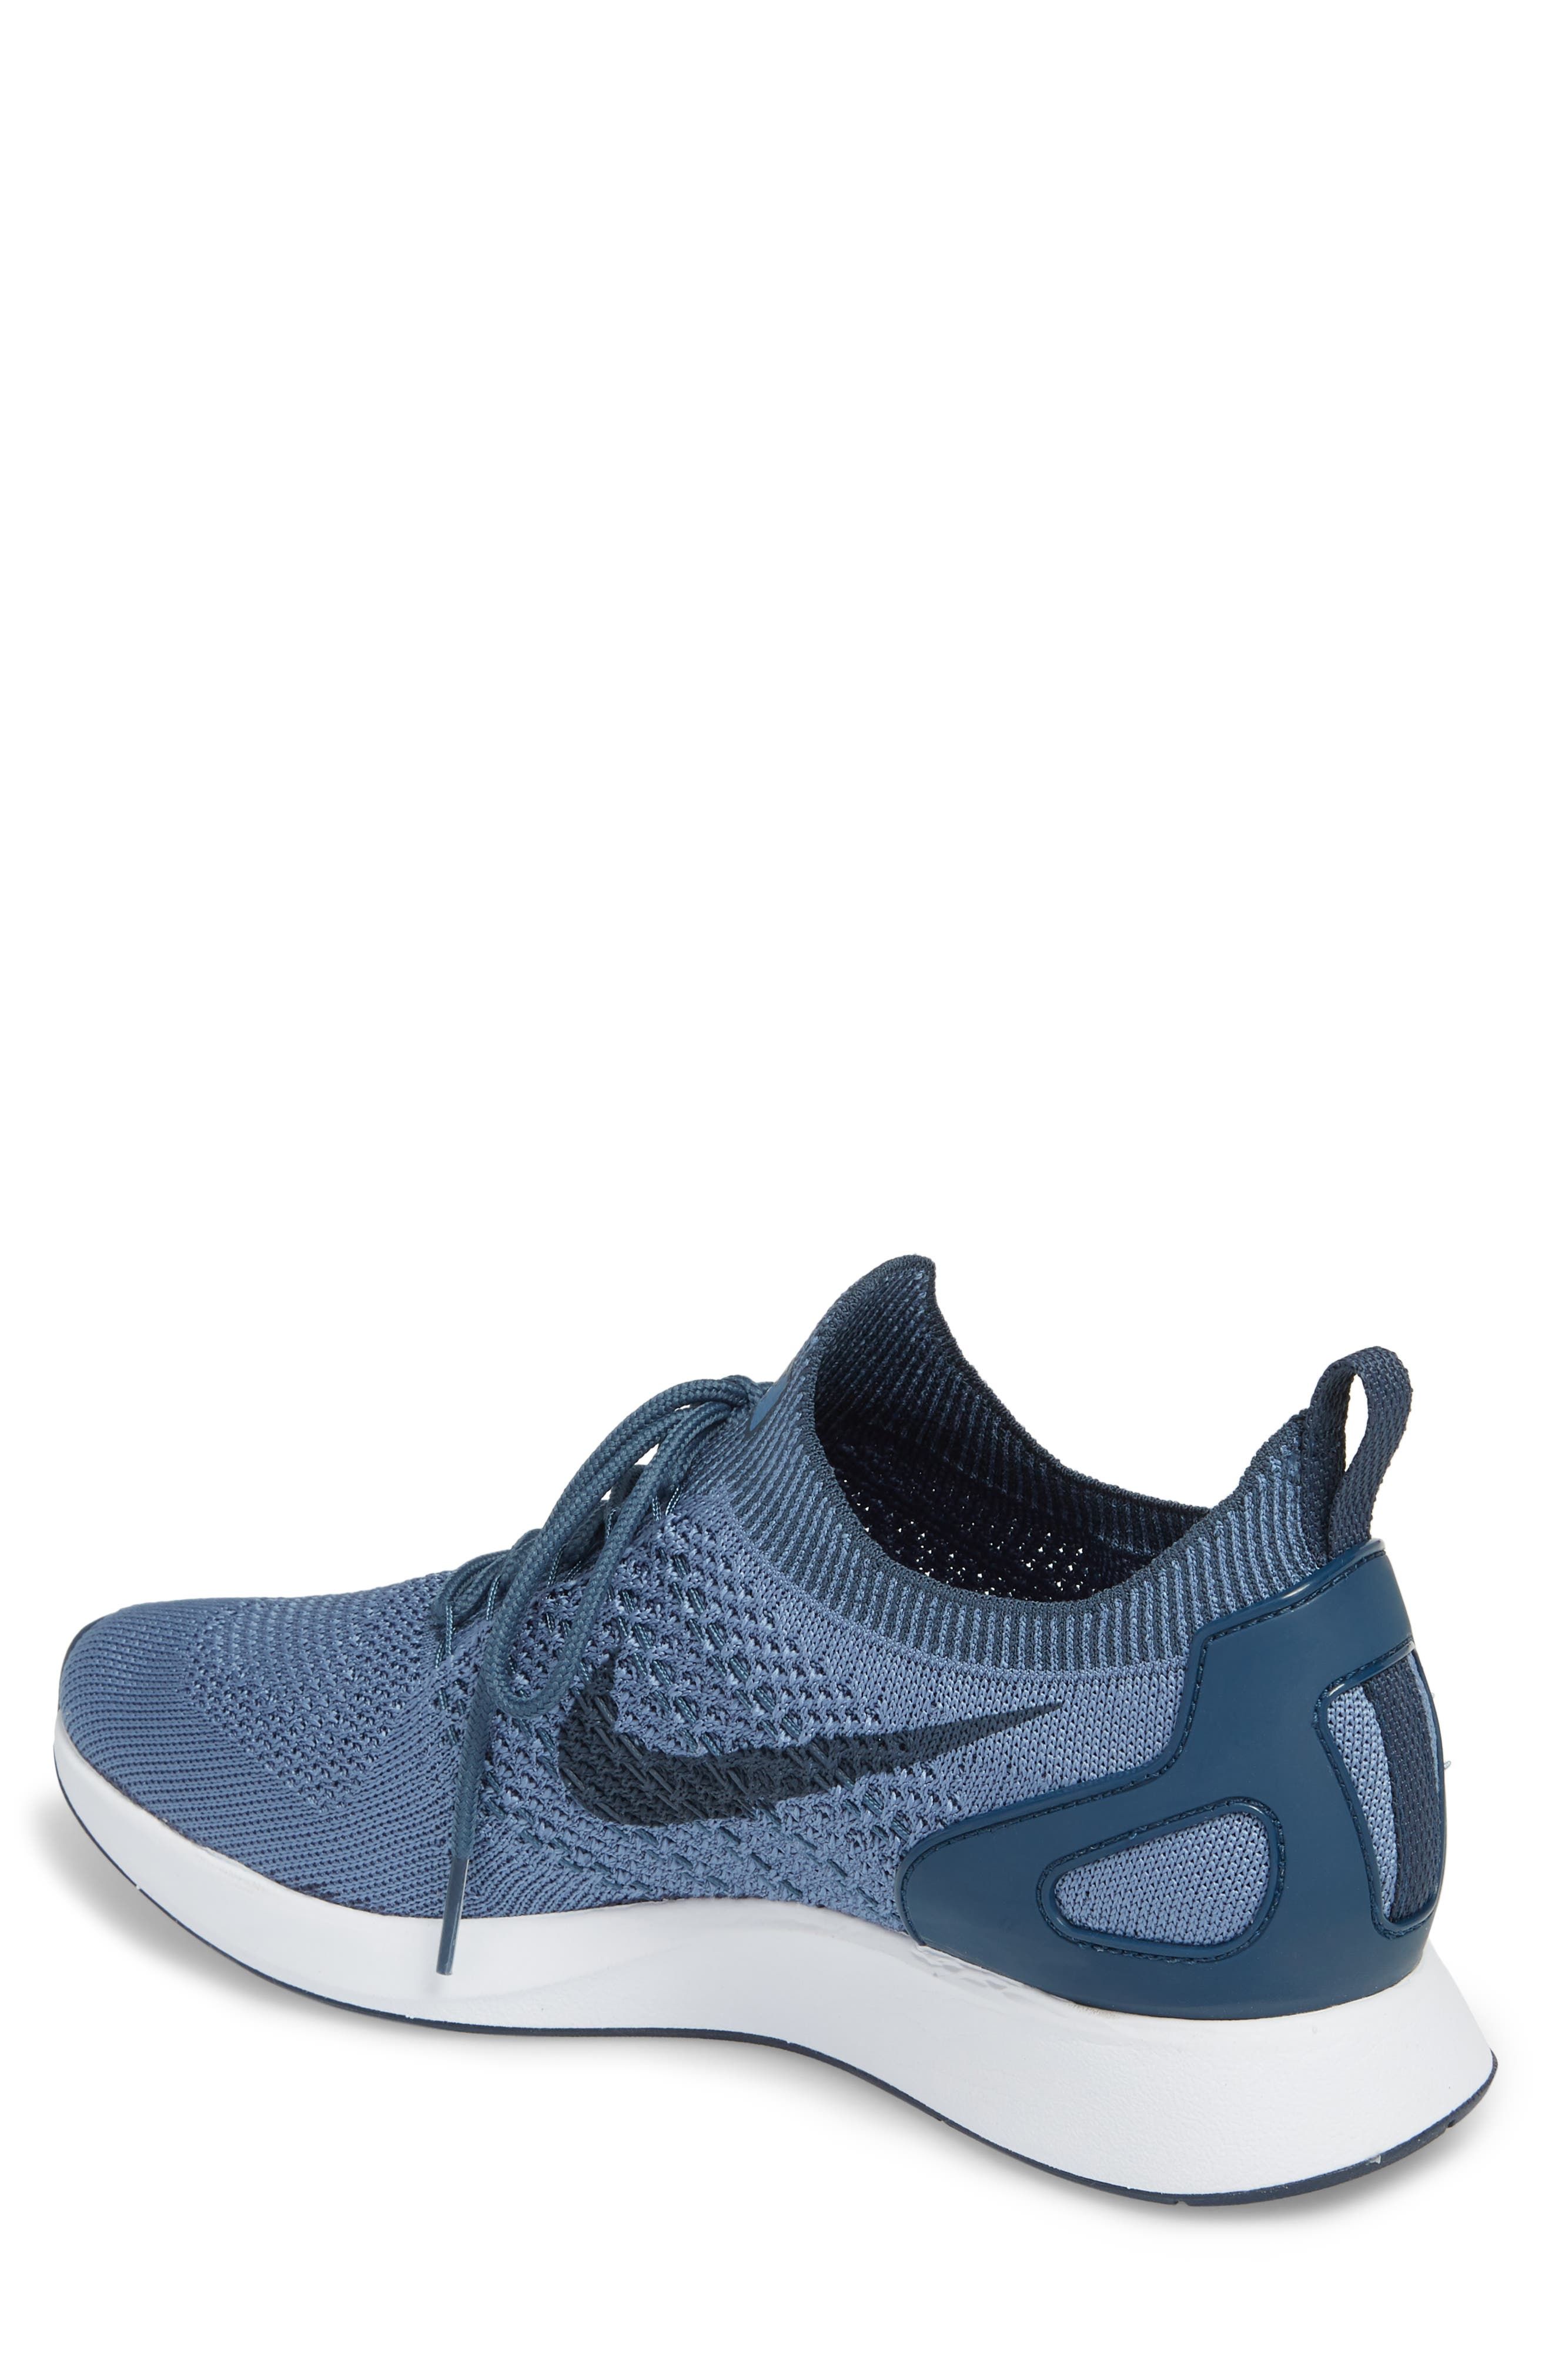 Air Zoom Mariah Flyknit Racer Sneaker,                             Alternate thumbnail 2, color,                             OCEAN FOG/ BLUE/ WHITE